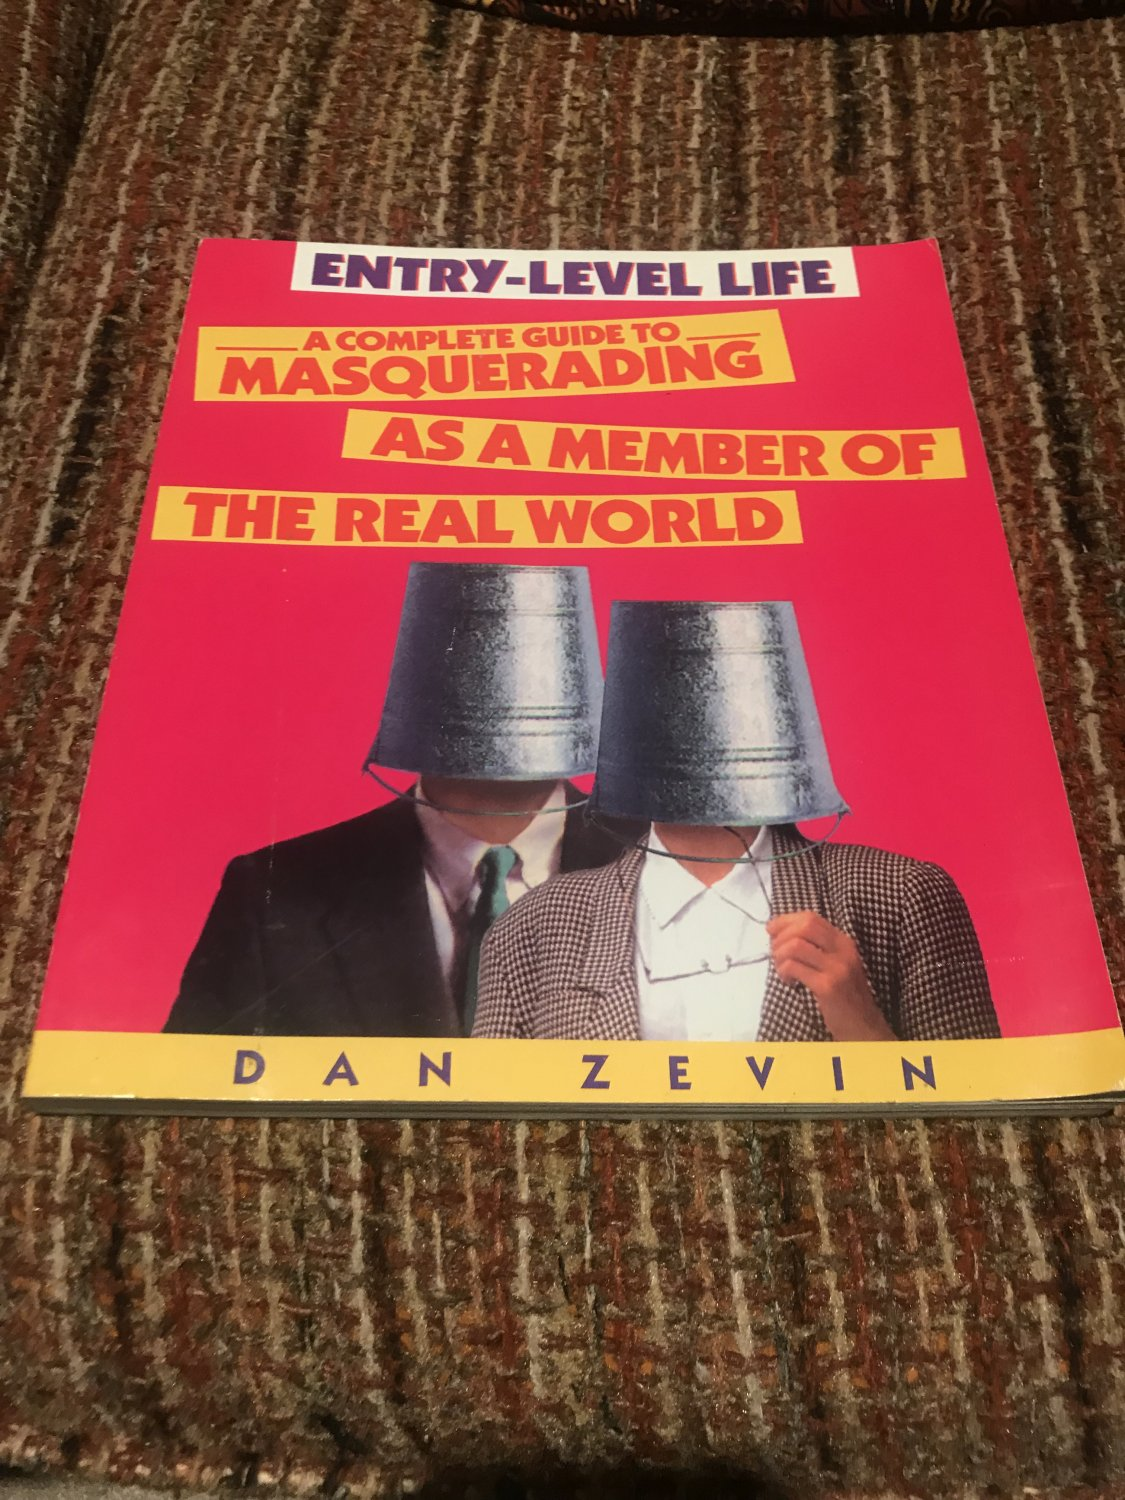 Entry-Level Life: A Complete Guide to Masquerading as a Member of the Real World 1994 by Daan Zevin